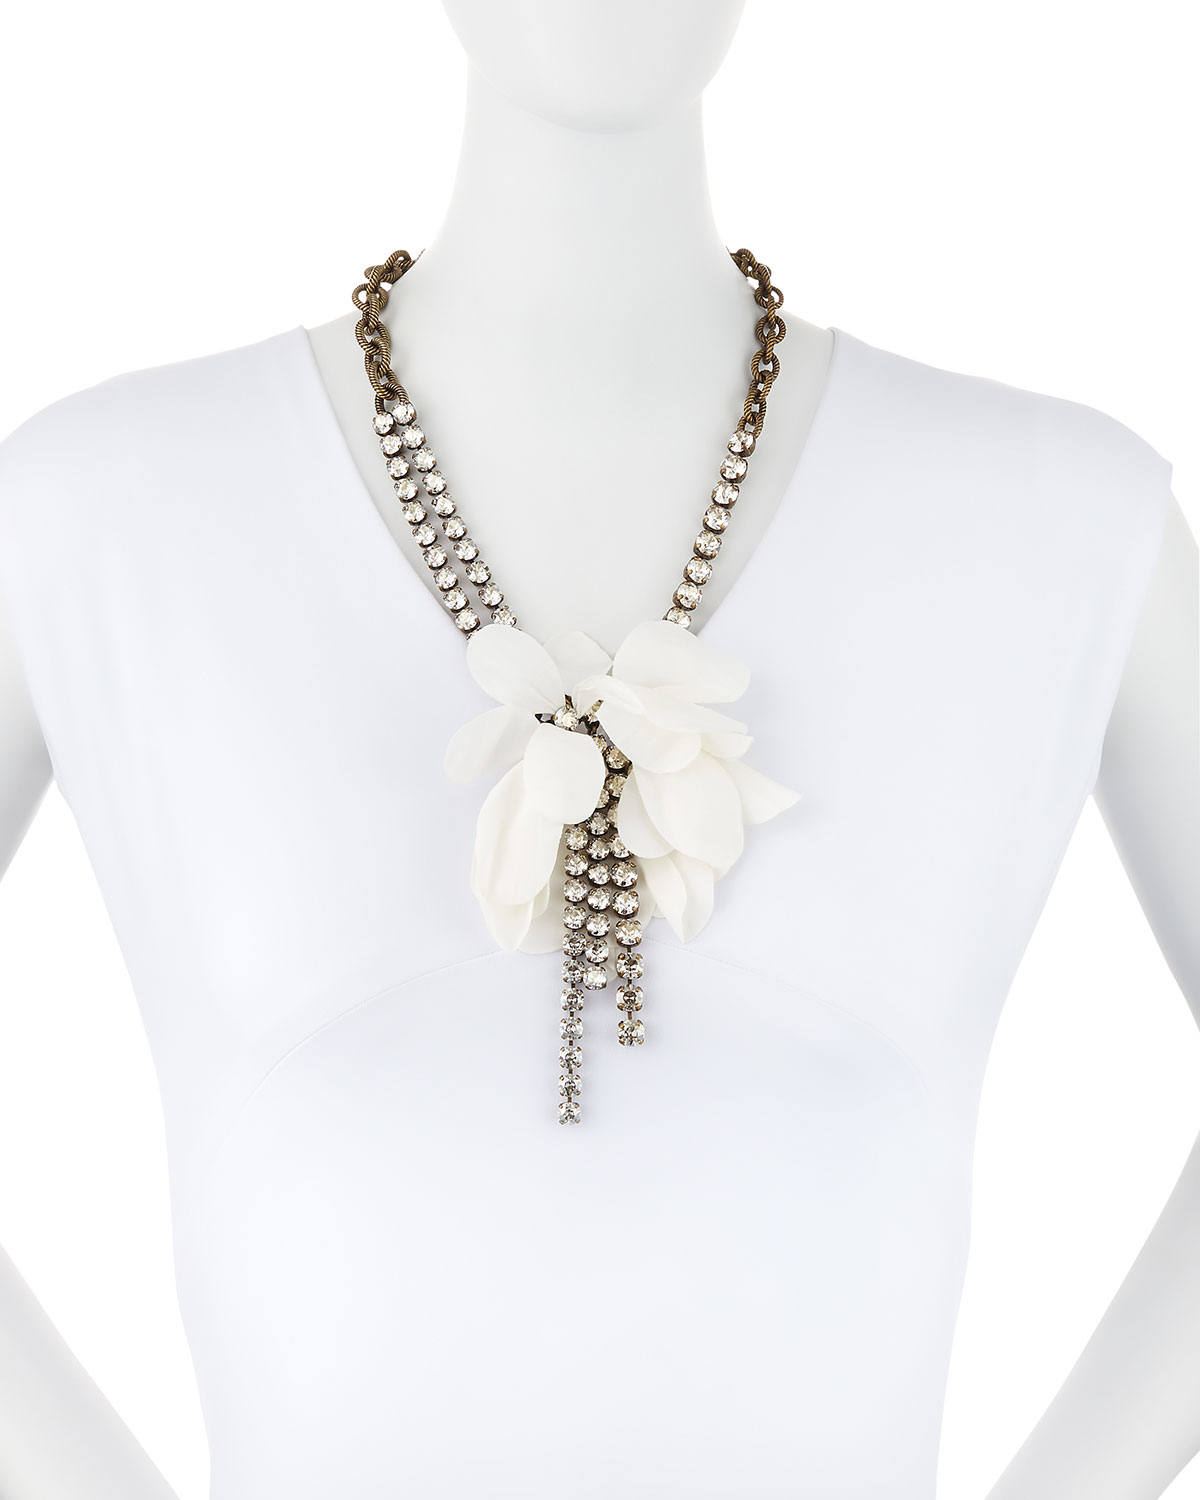 Lanvin crystal-embellished flower necklace - Metallic L8JYtm2yQj